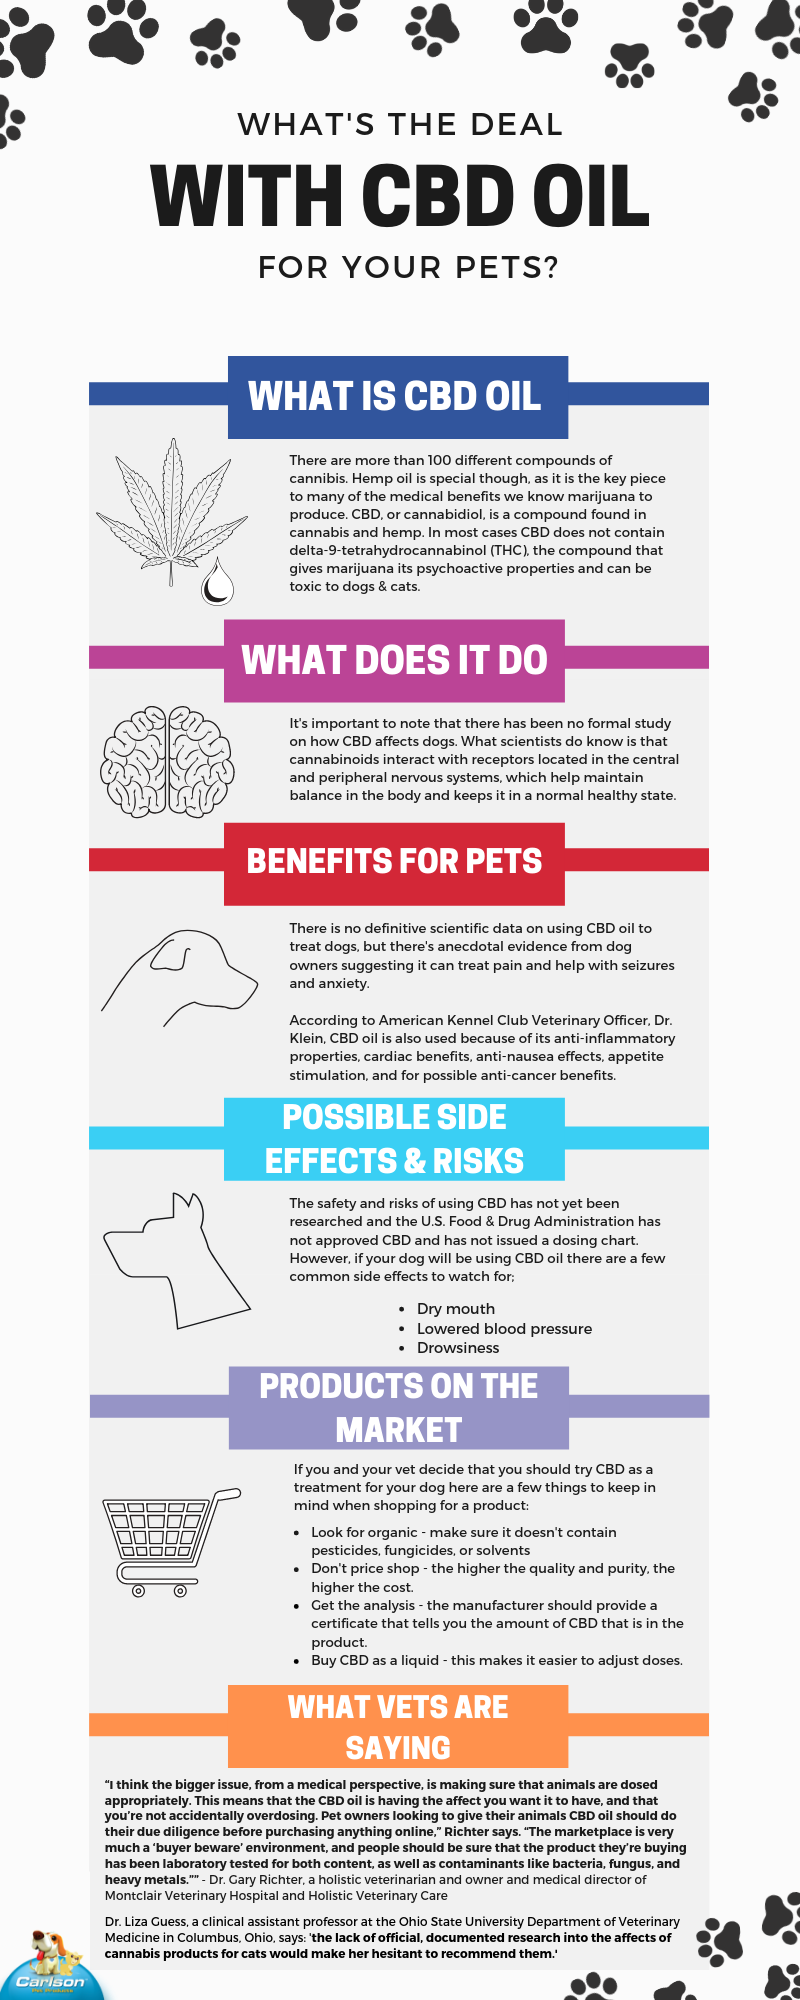 CBD oil for pets info graphic